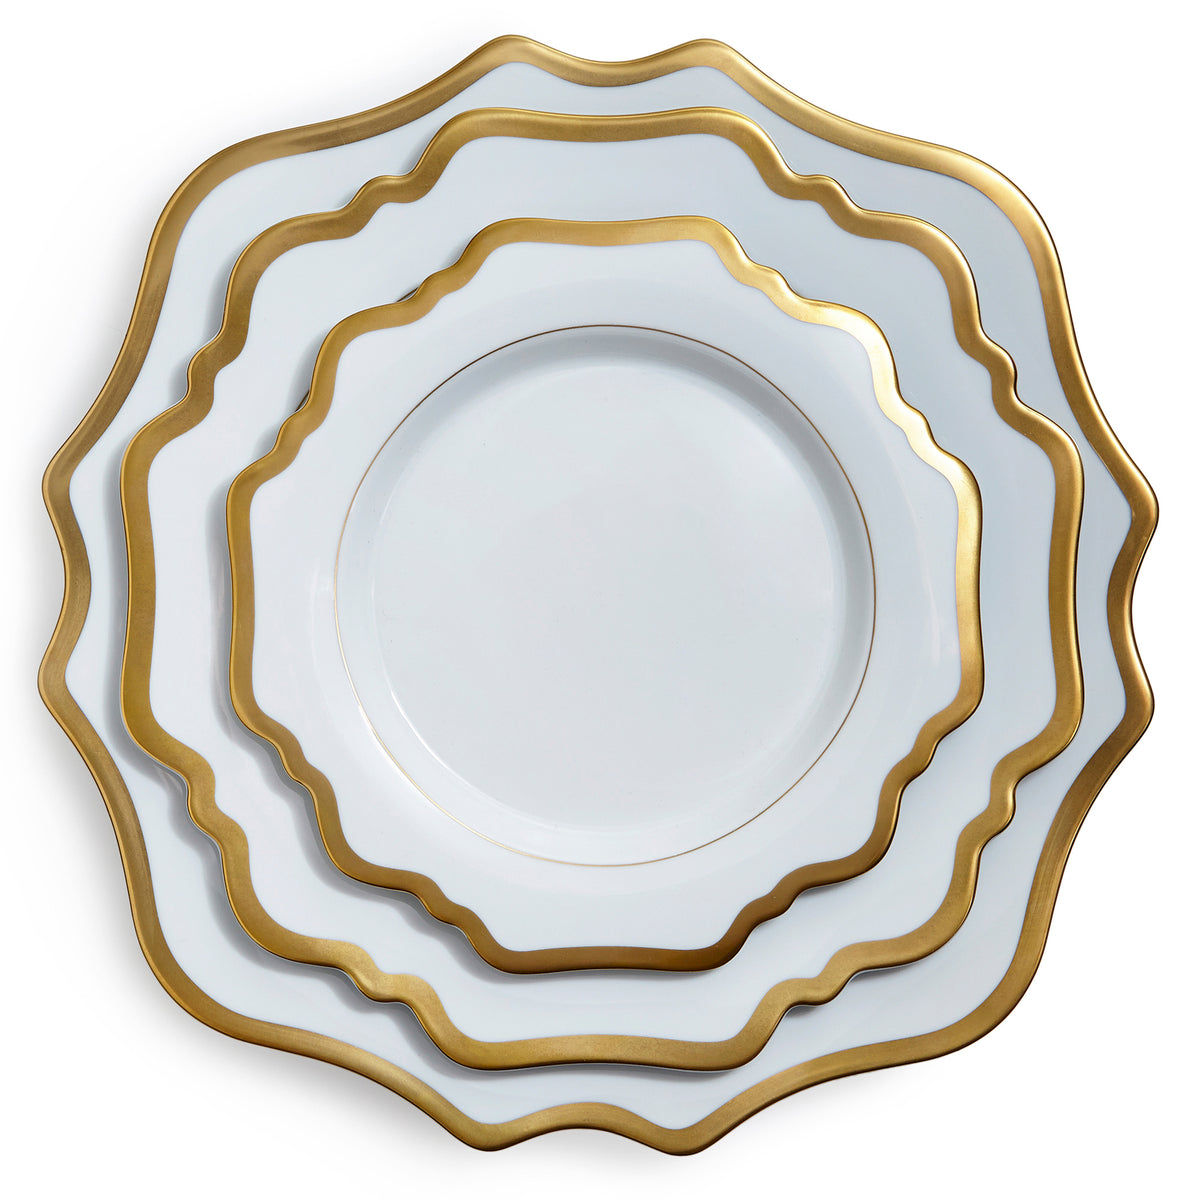 Antique White and Gold Dinner Plate